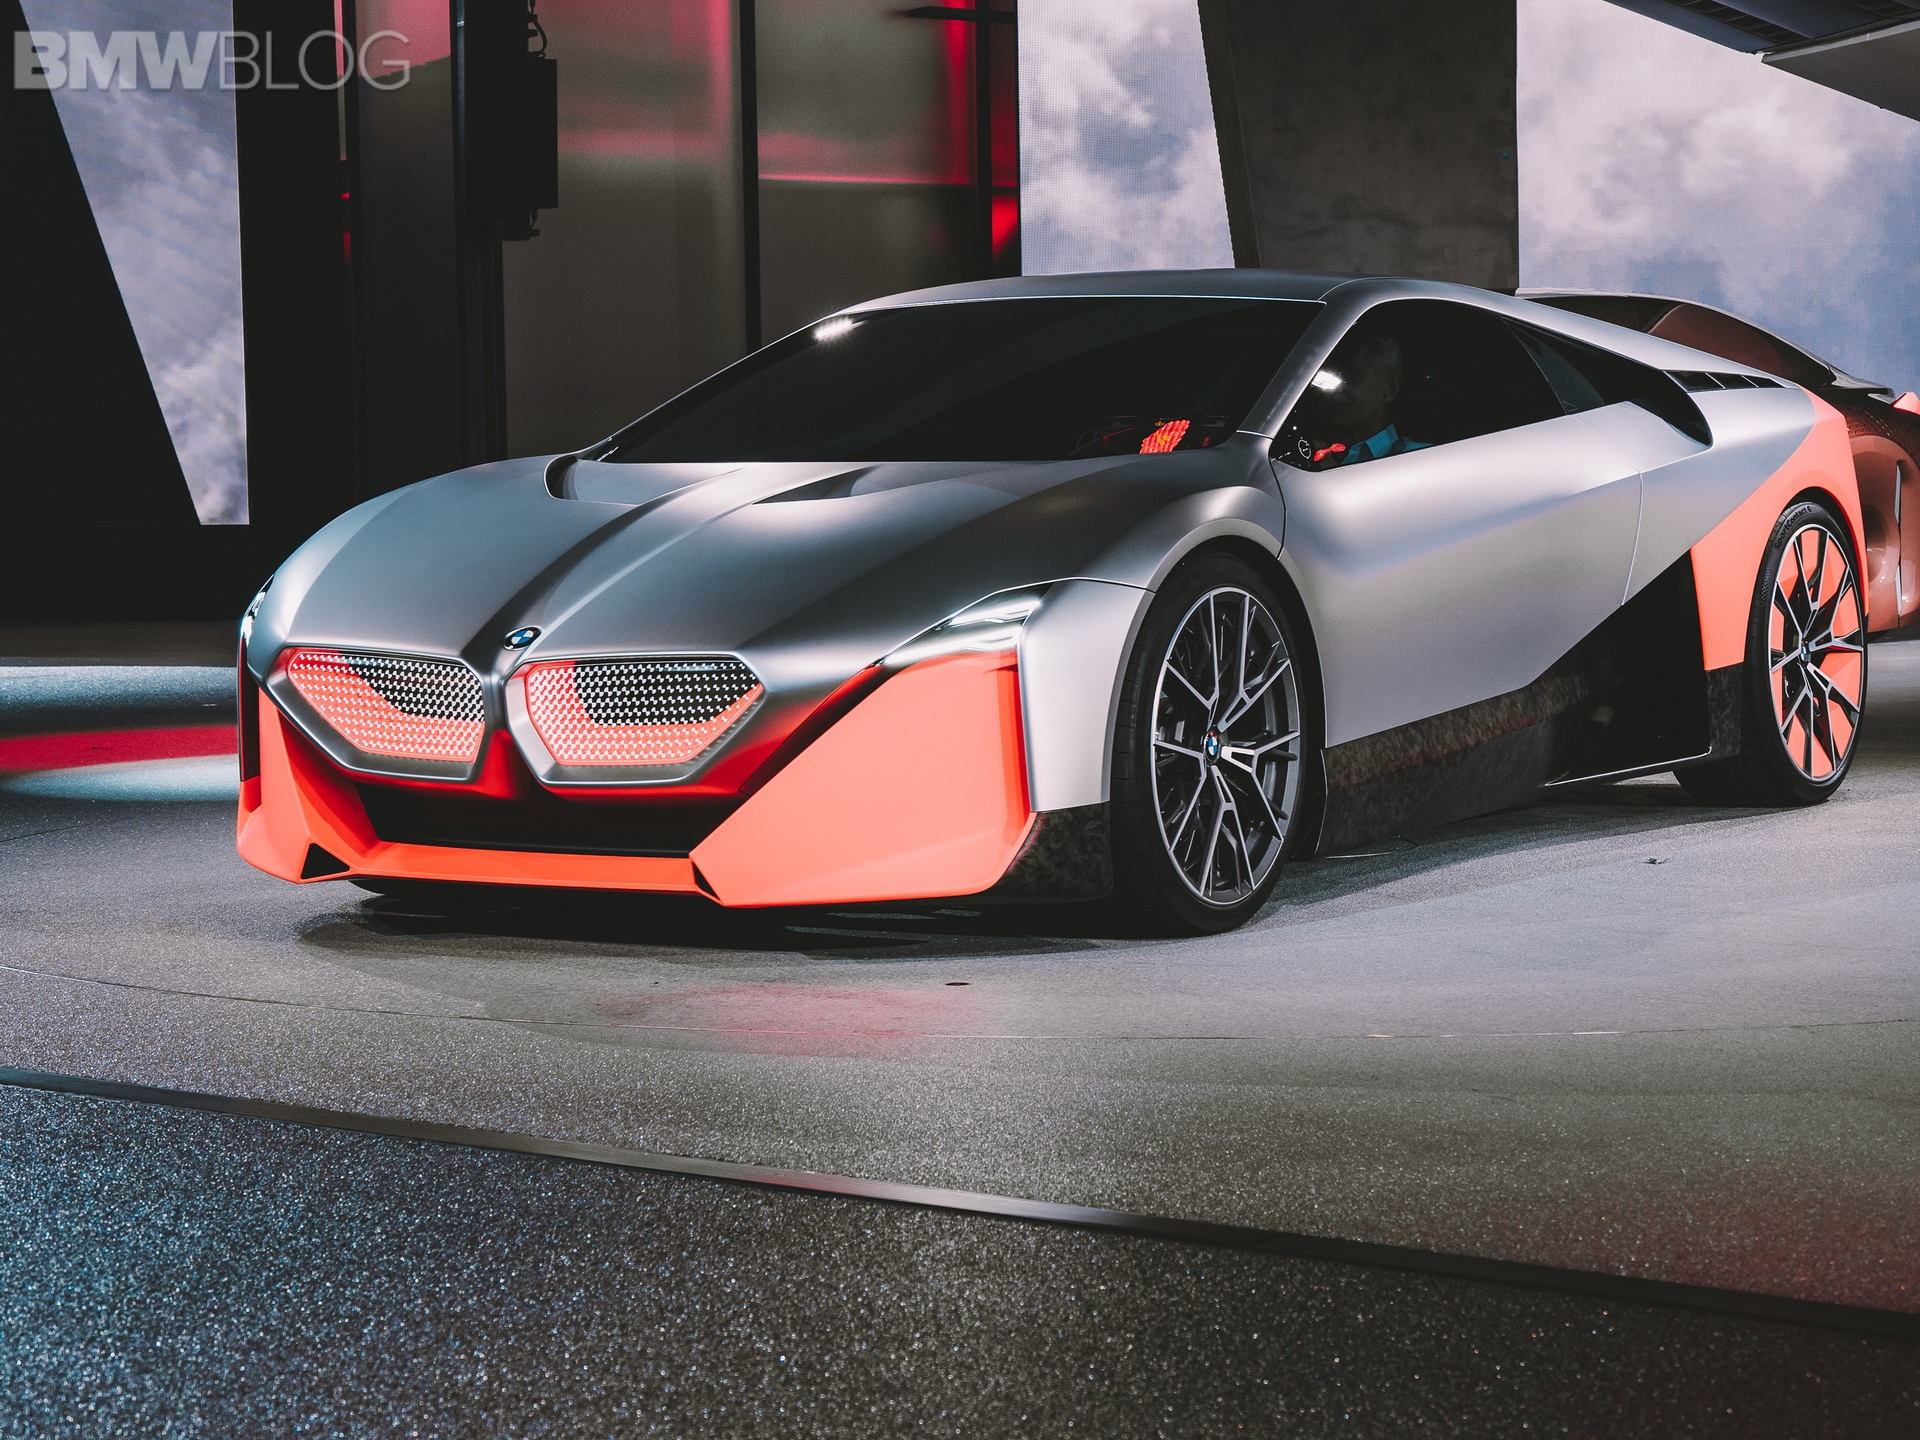 BMW European Delivery >> Photo Comparison: BMW Vision M NEXT vs BMW i8